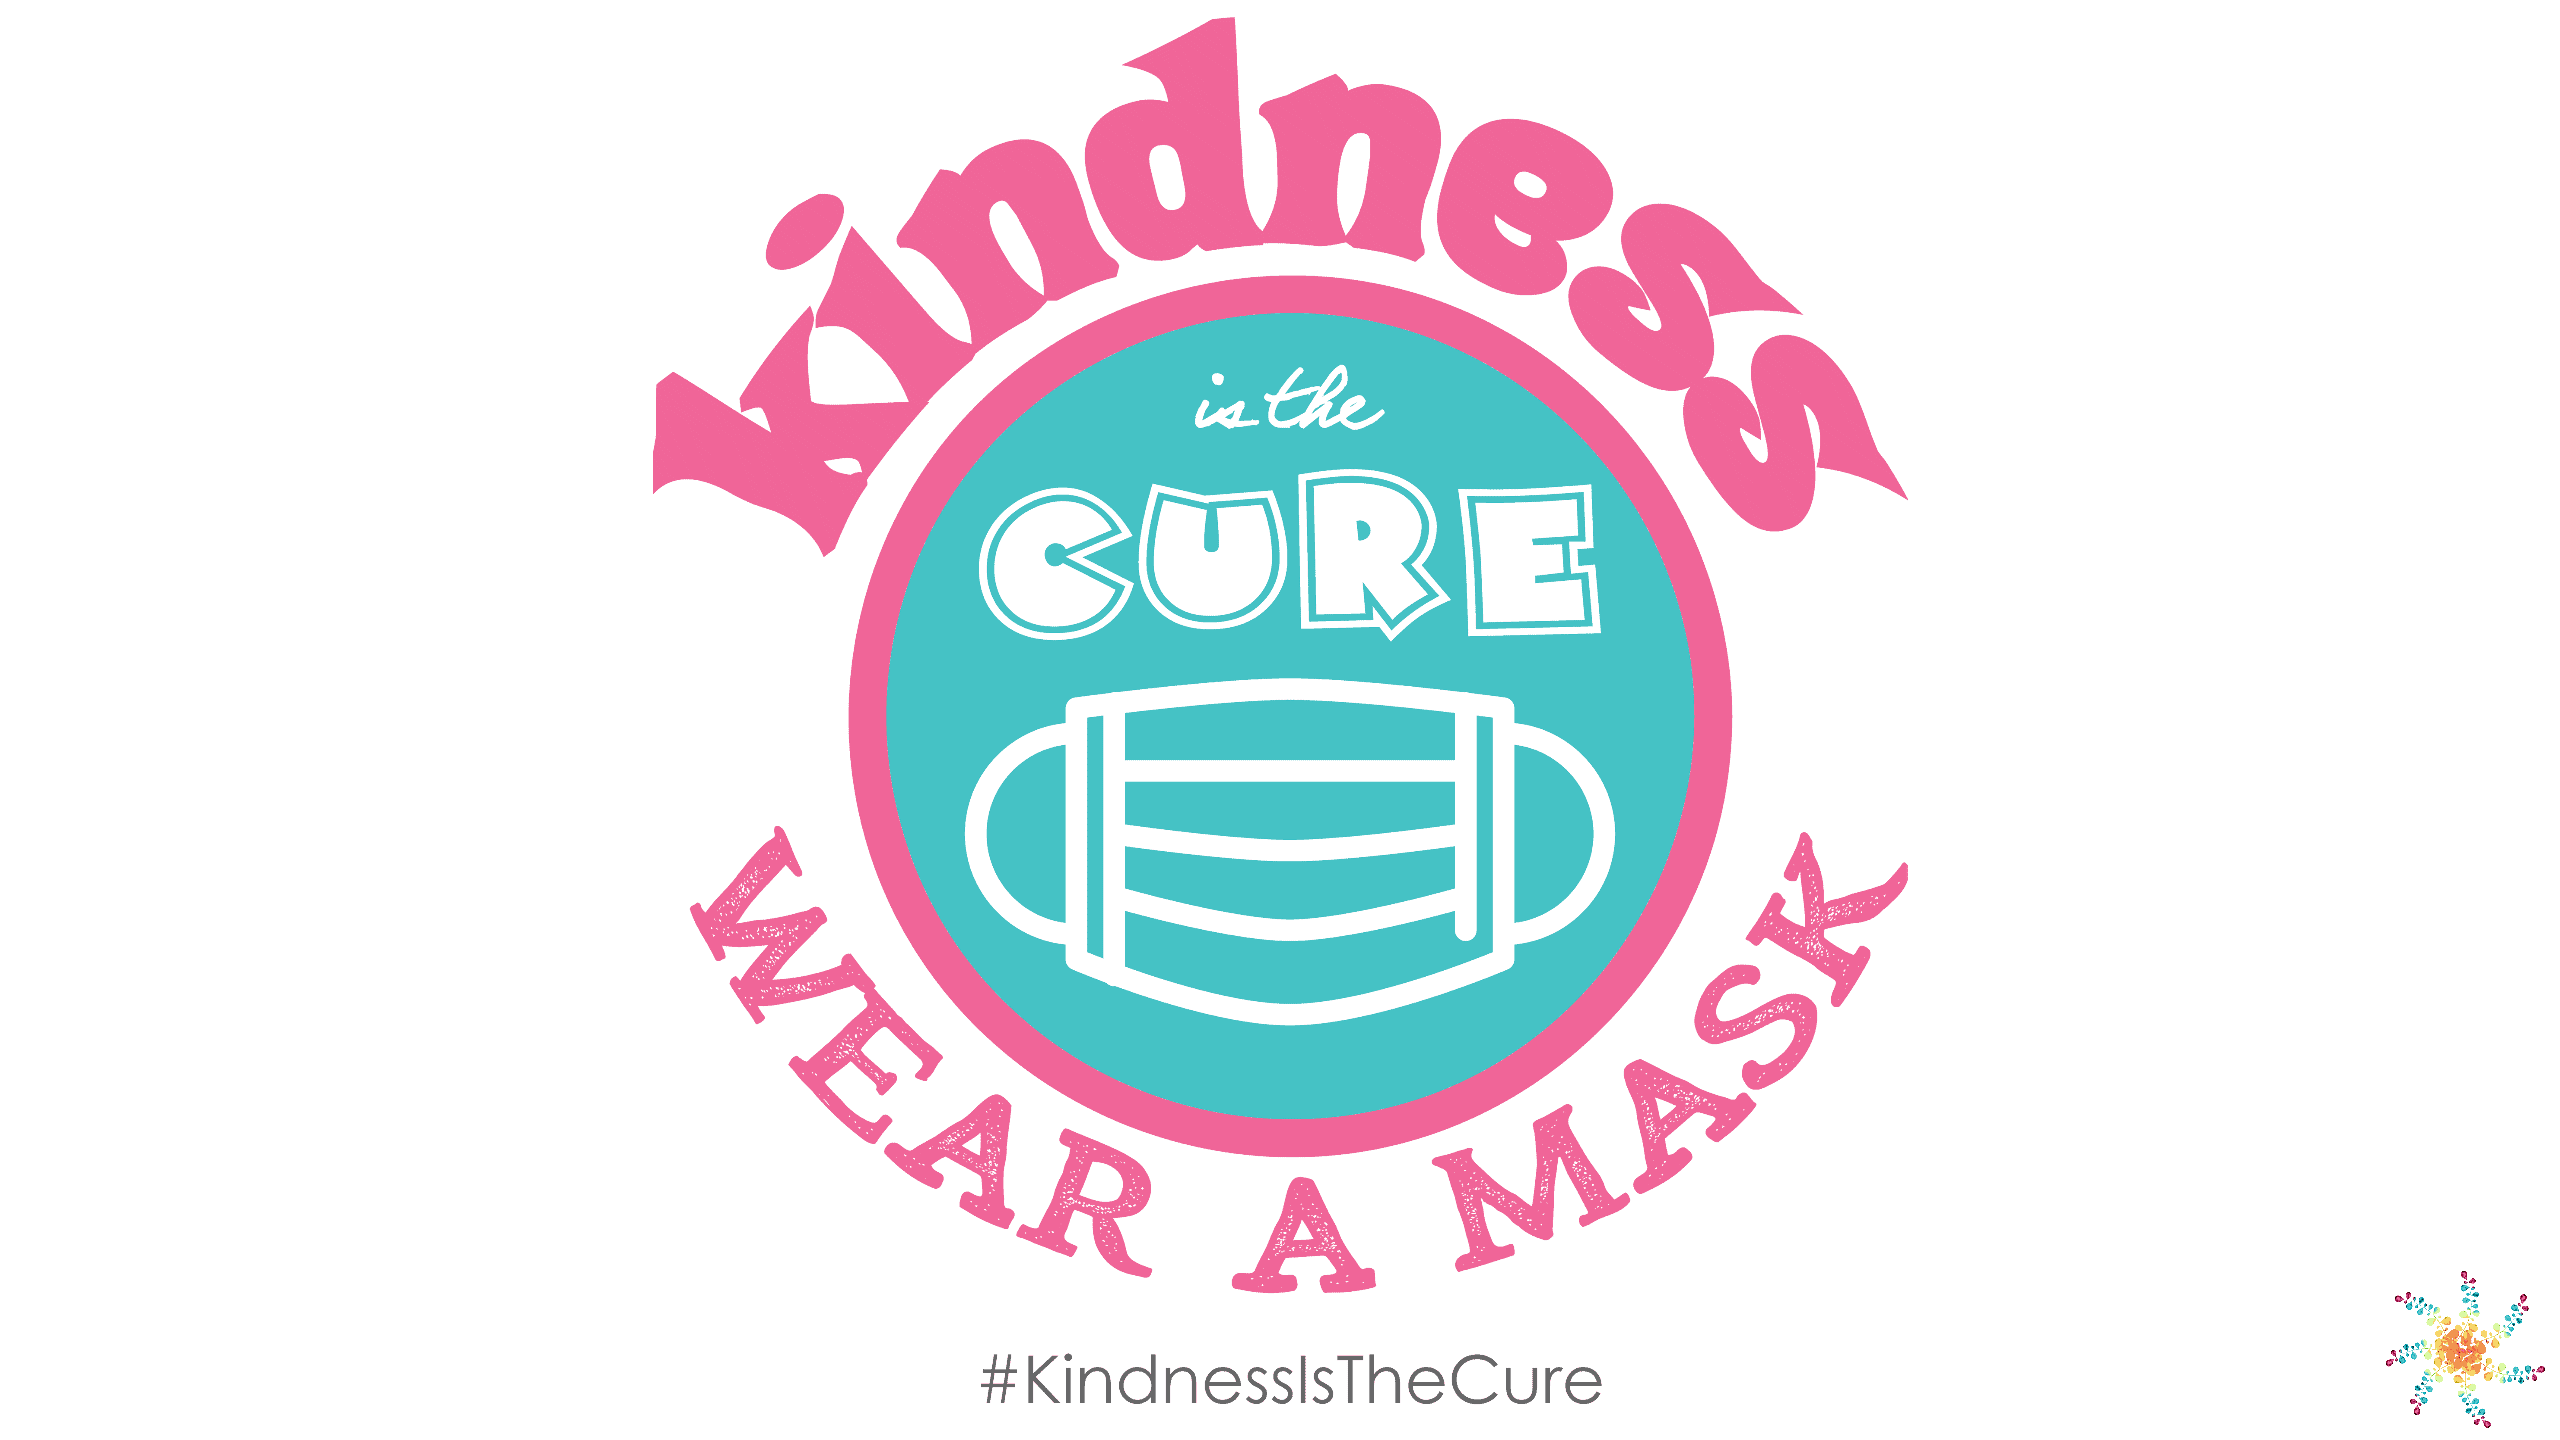 Kindness is the Cure